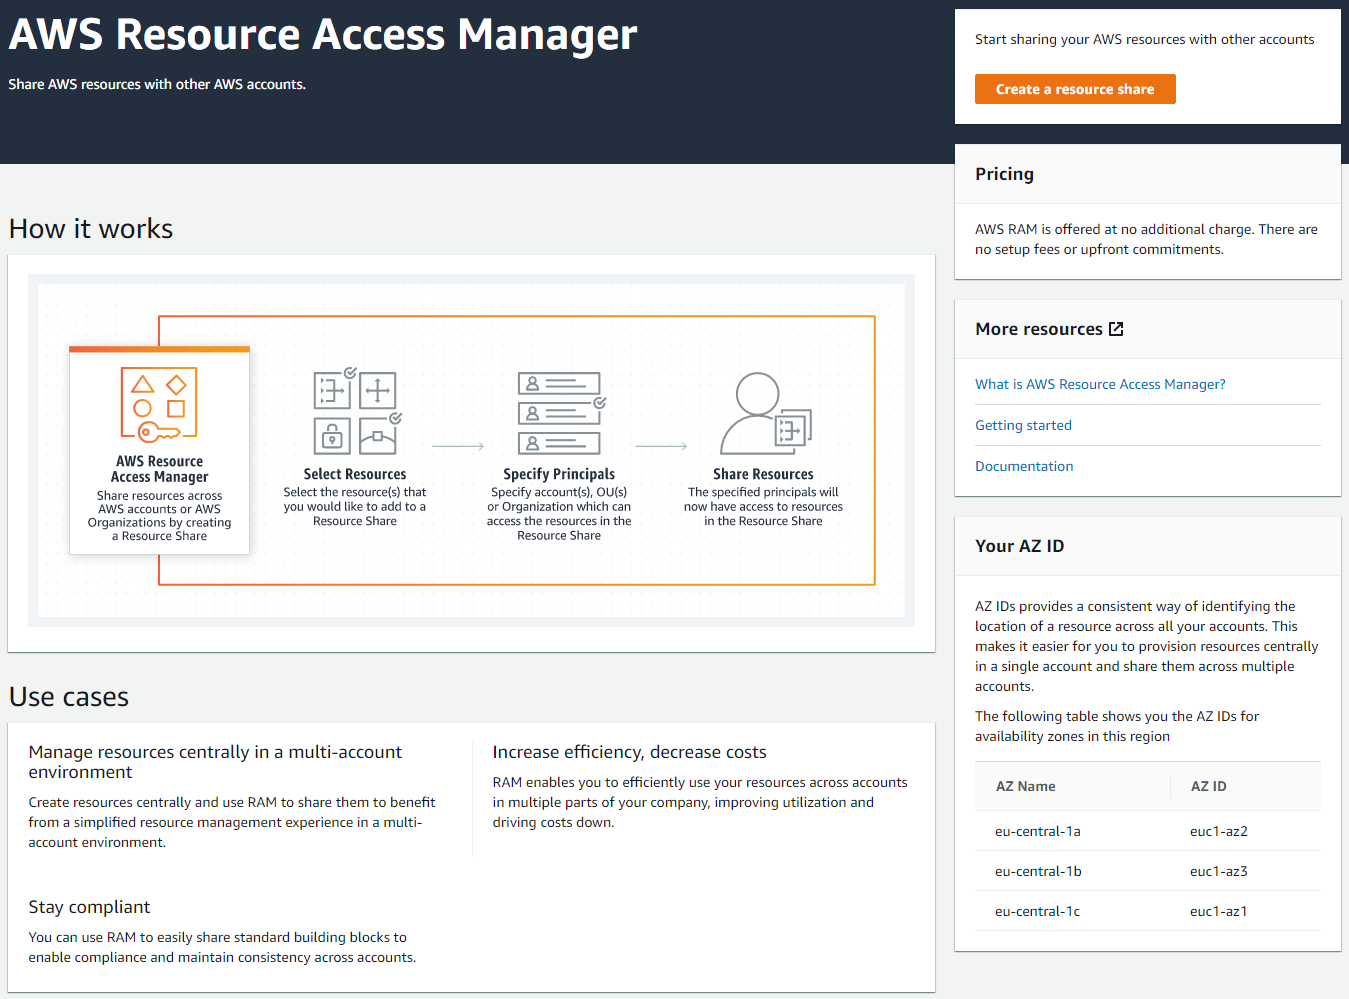 AZ ID Mappings in AWS Resource Access Manager